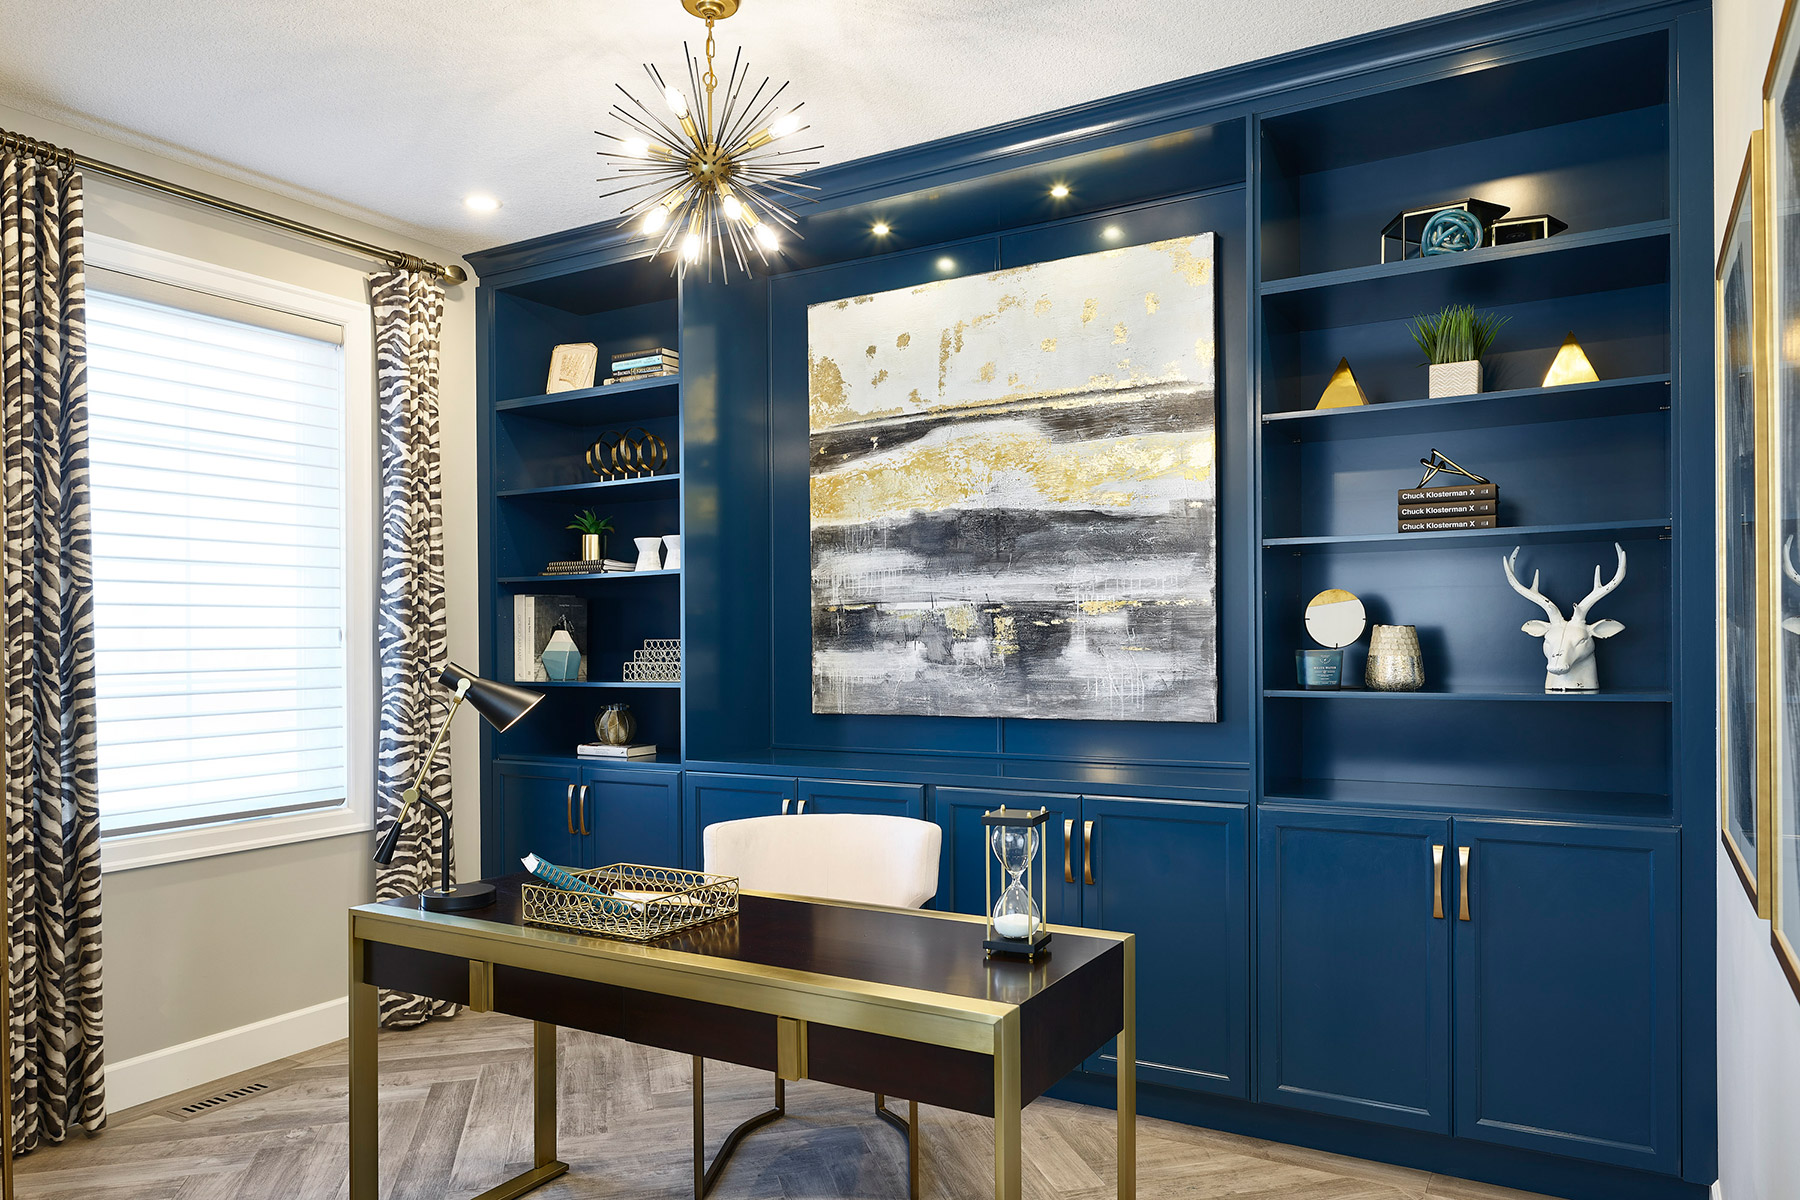 Smythe Plan Study Room at Yorkville in Calgary Alberta by Mattamy Homes